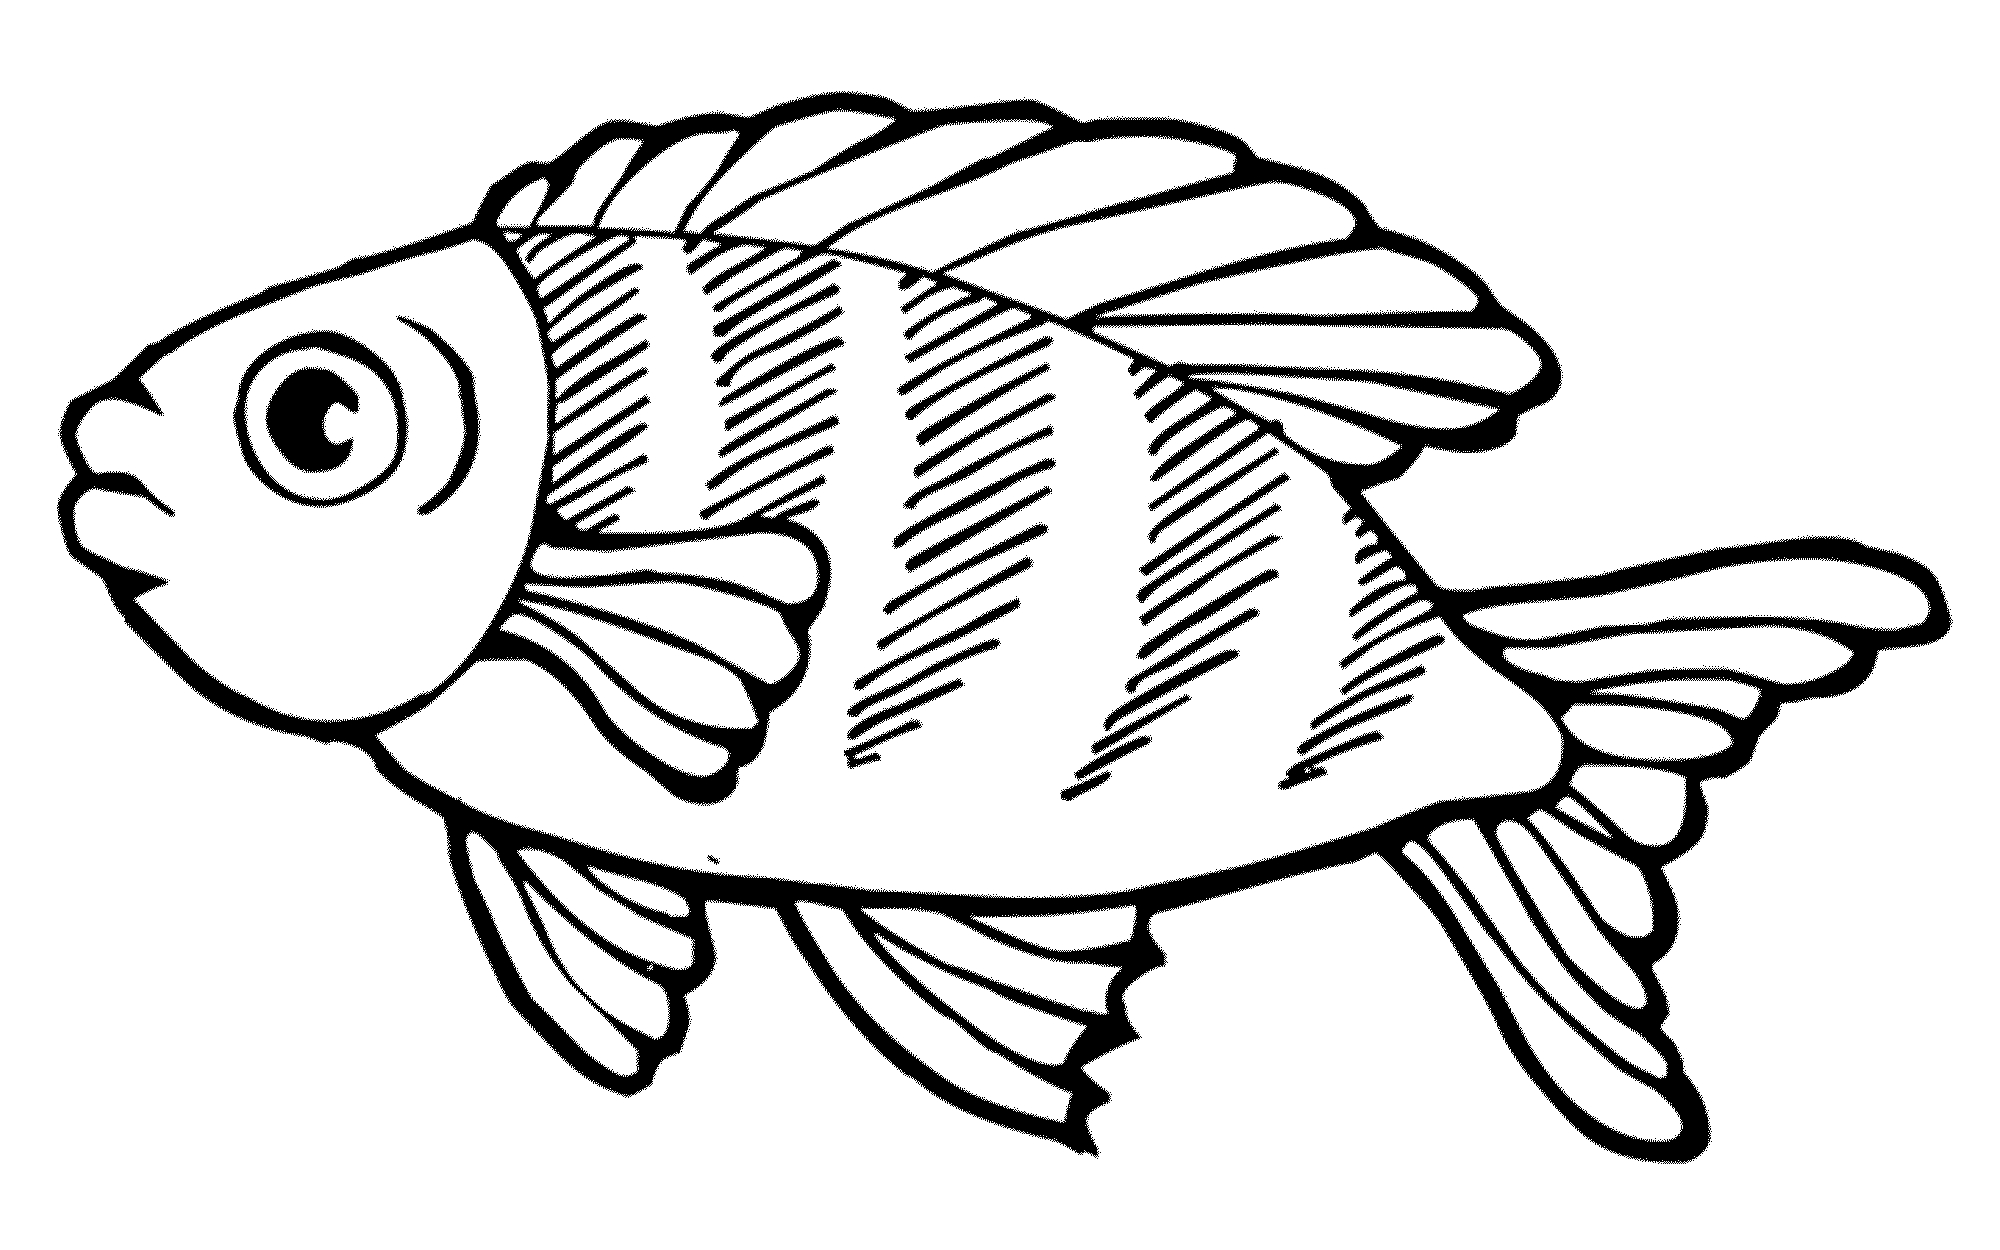 fish picture to color free printable goldfish coloring pages for kids picture fish color to